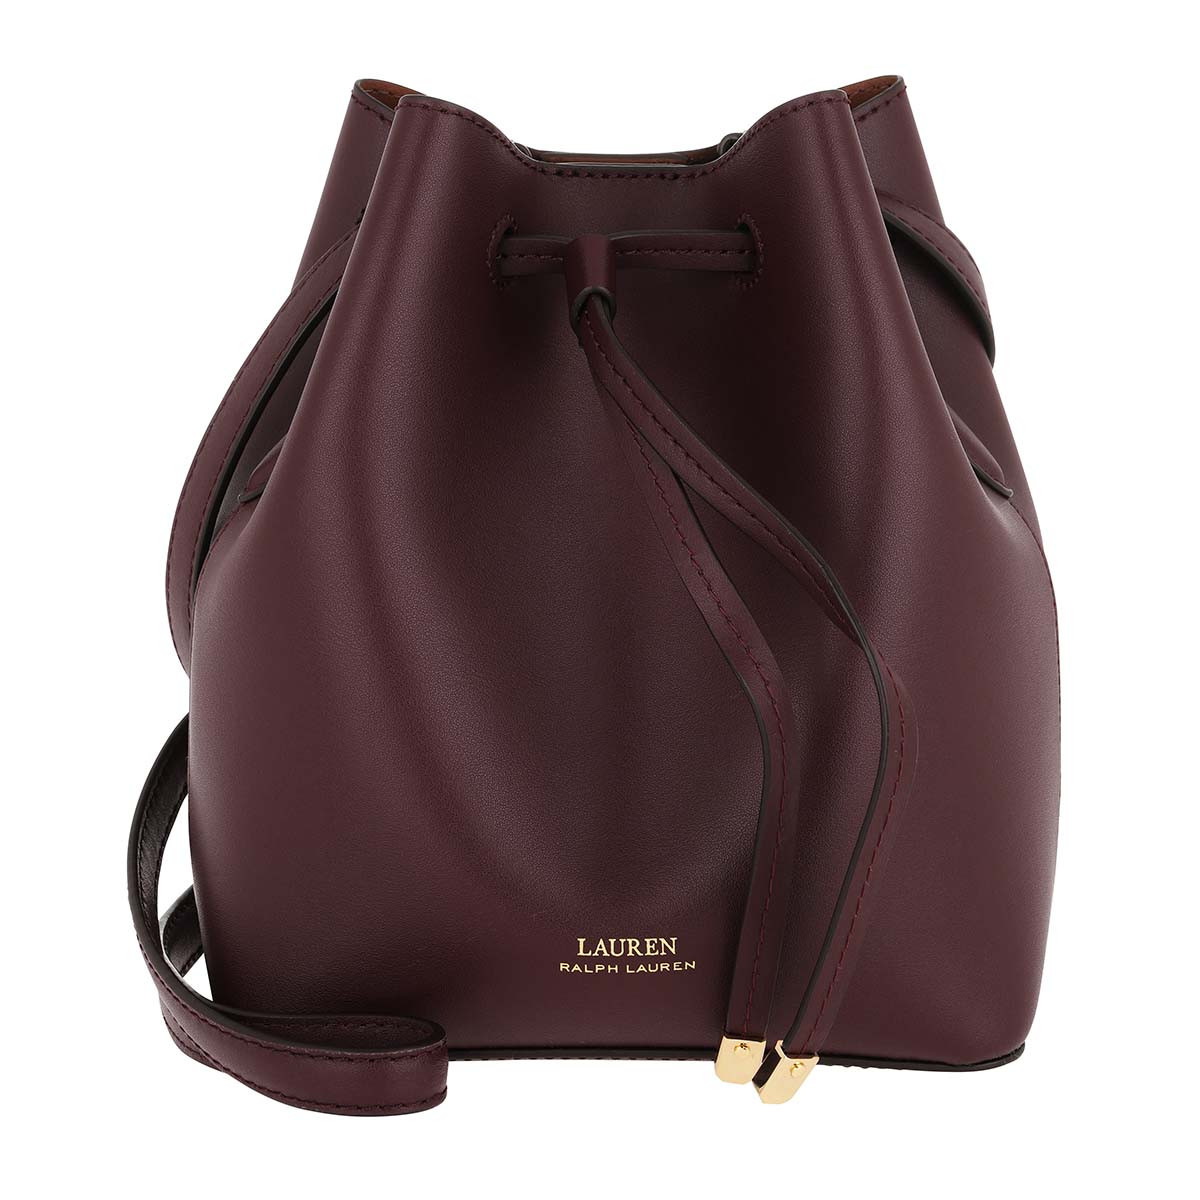 Lauren Ralph Lauren Beuteltasche - Debby Drawstring Mini Bordeaux Field Brown - in lila - für Damen